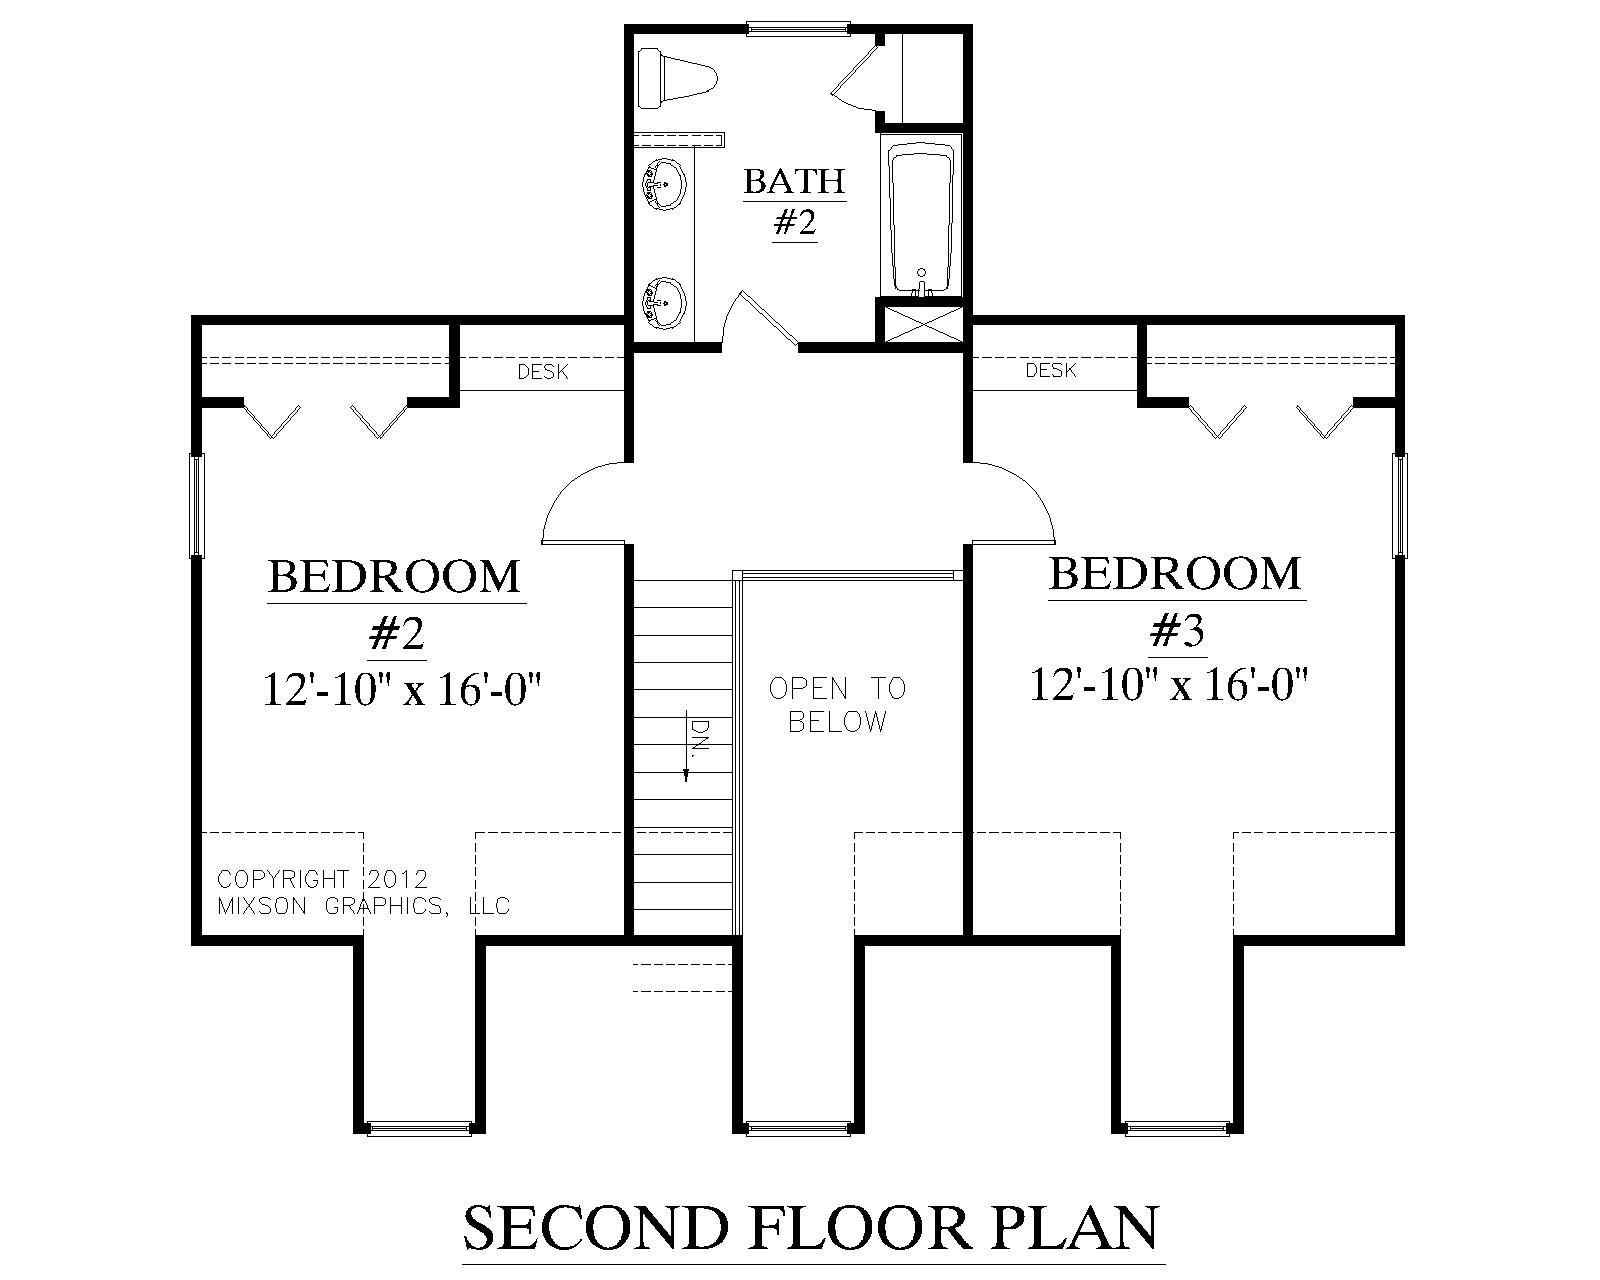 House Plan 2051 Ashland Second Floor Plan Colonial Cottage 1 1 2 Story Design With Three Bedrooms And 2 1 2 Baths Garage Floor Plans Floor Plans Story House